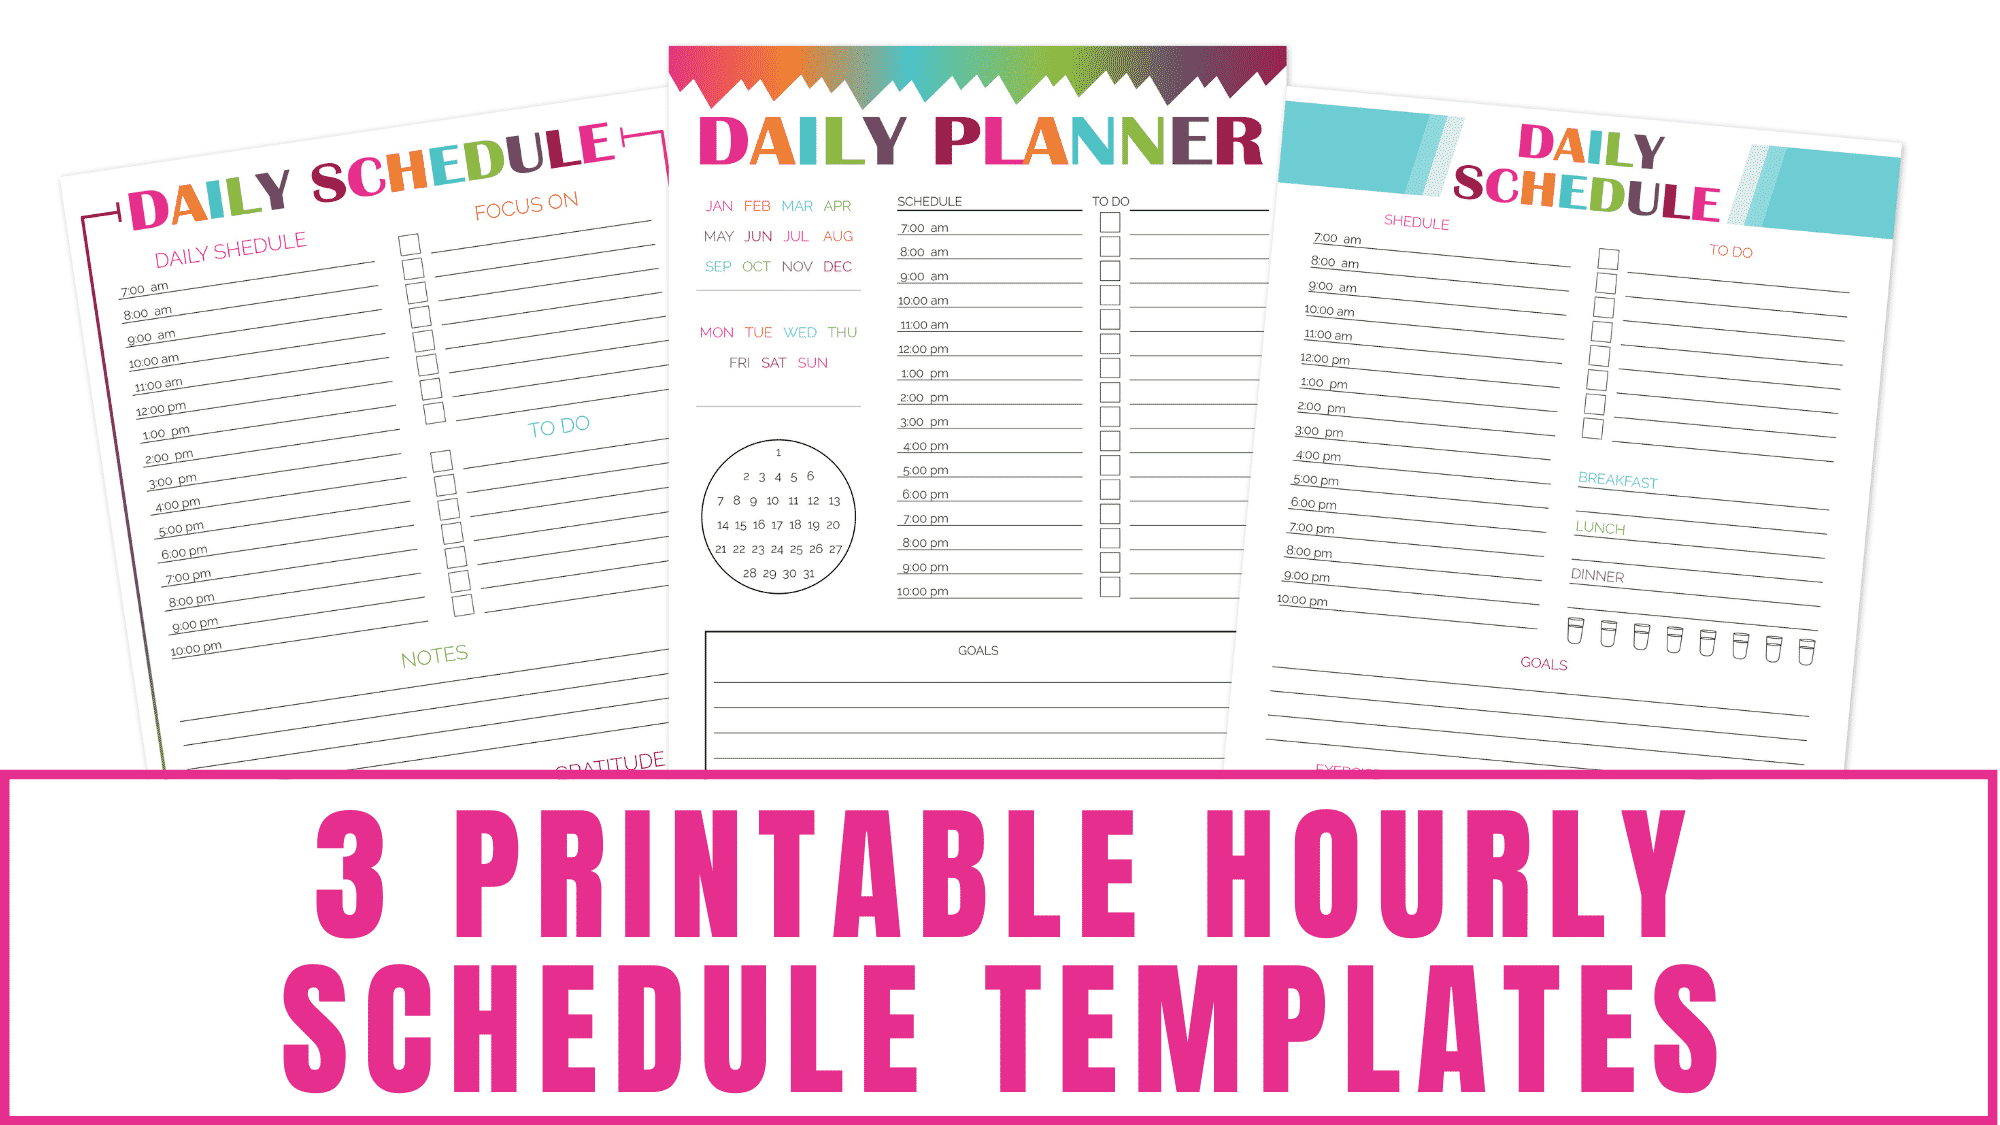 Whether you are a student in high school, college, or a busy mom these printable hourly schedule templates will work for you! Everyone could benefit from using one of these printable schedules because they allow you to record your daily tasks and responsibilities by the hour, a daily to do list, and more!